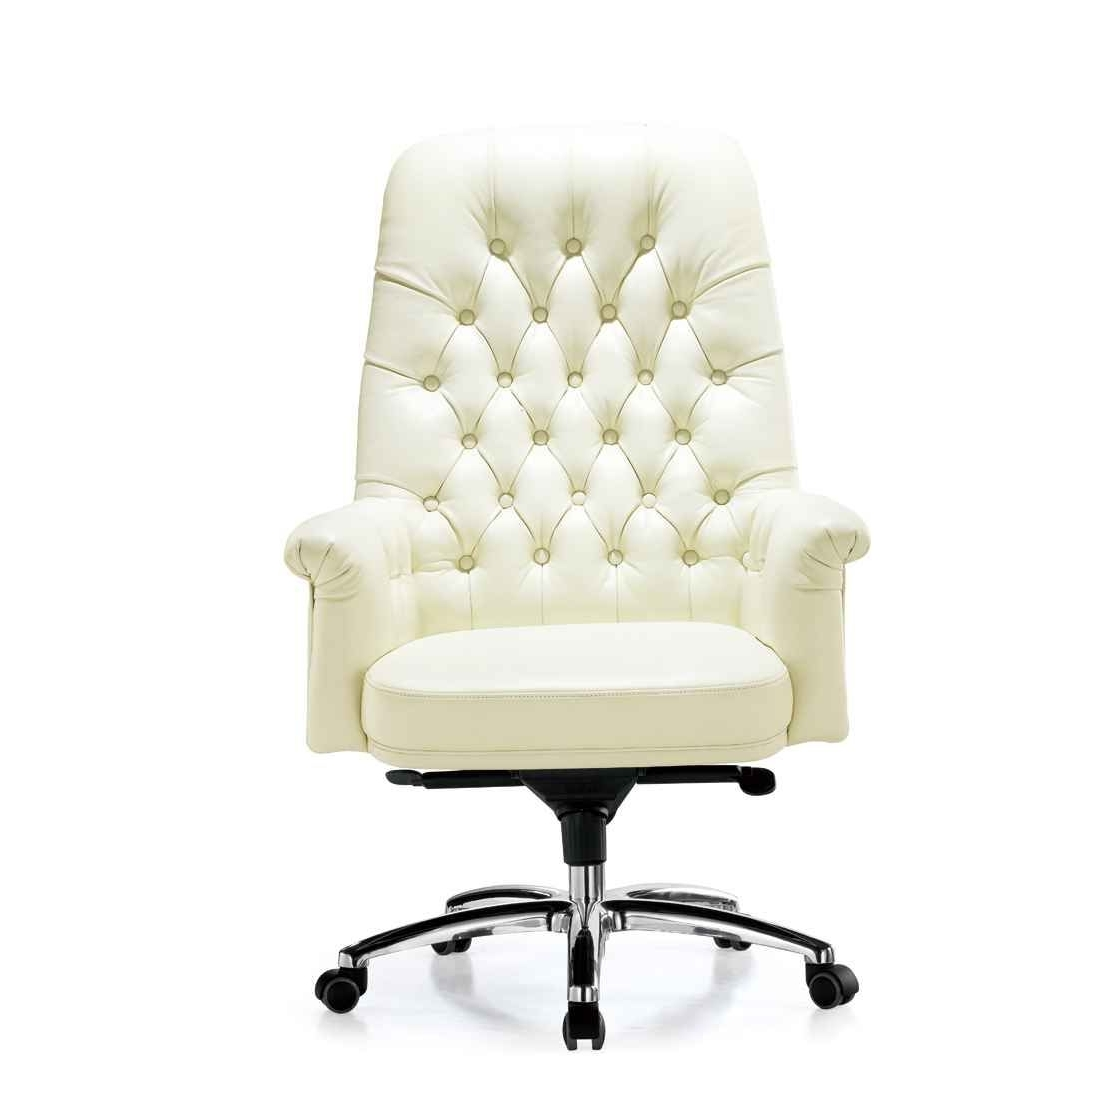 2019 Chair : High Back White Leather Executive Office Chair With Flip For Leather Swivel Recliner Executive Office Chairs (View 20 of 20)